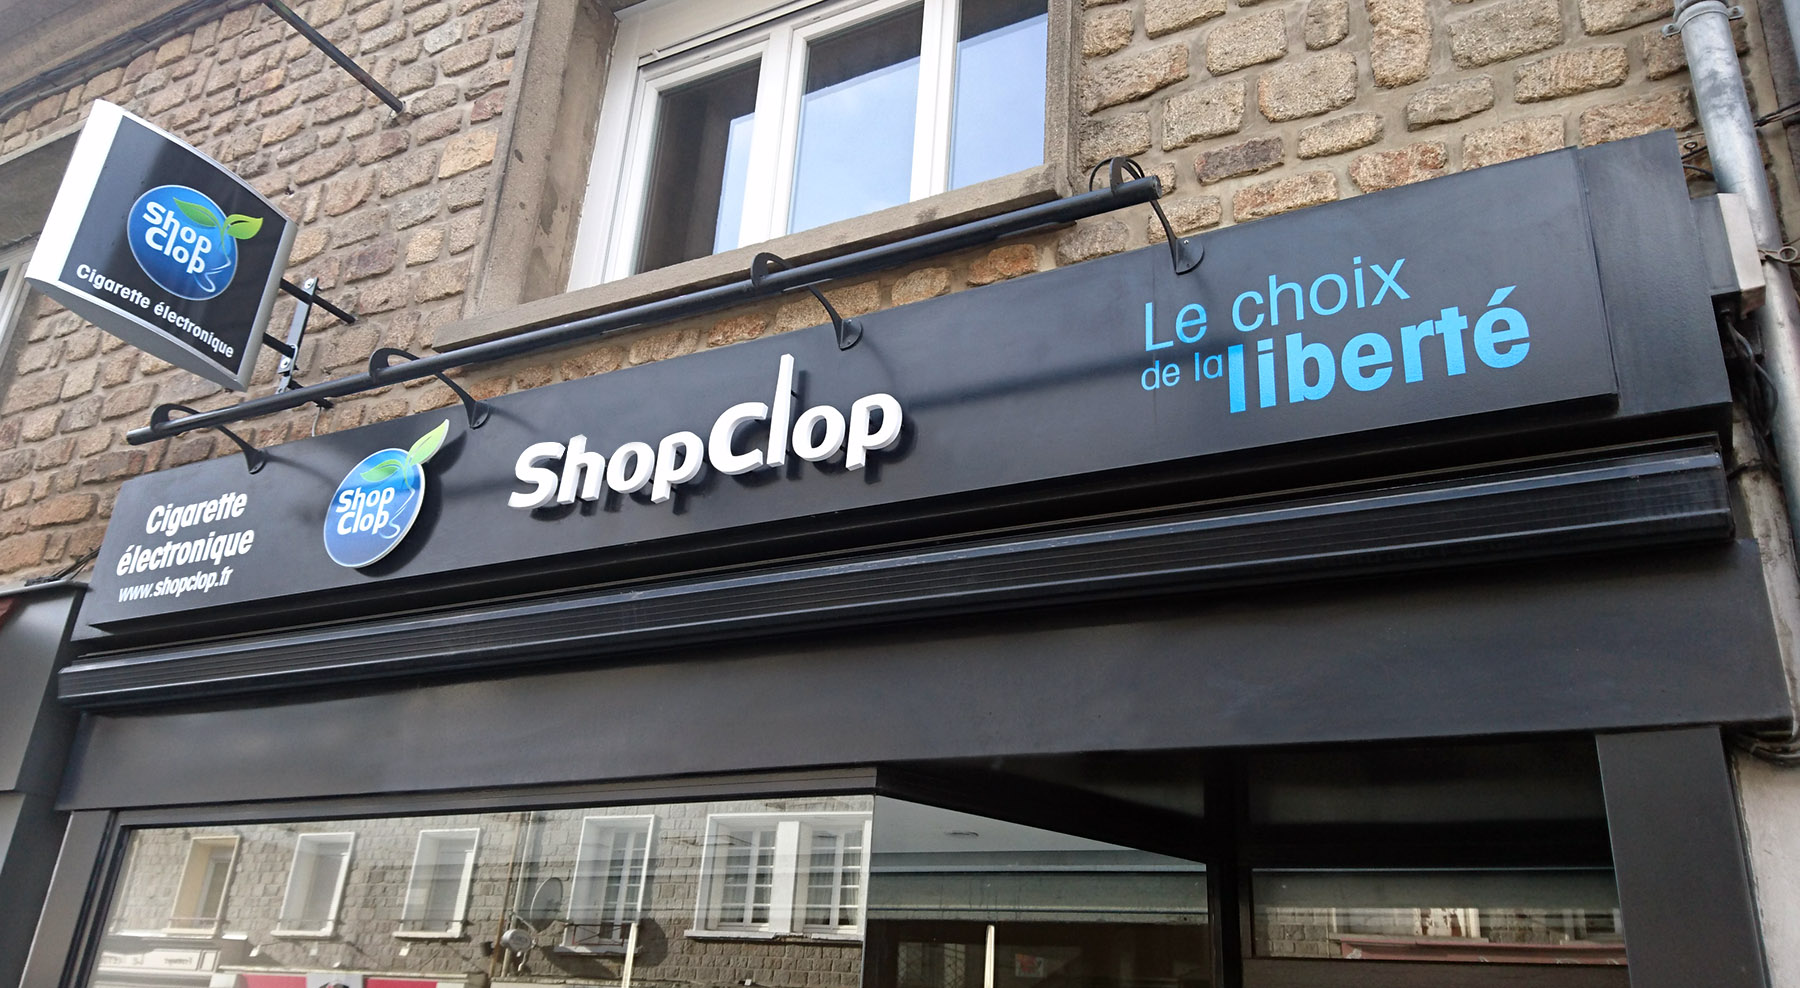 shopclop-cigarette-electronique-magasin-flers-61